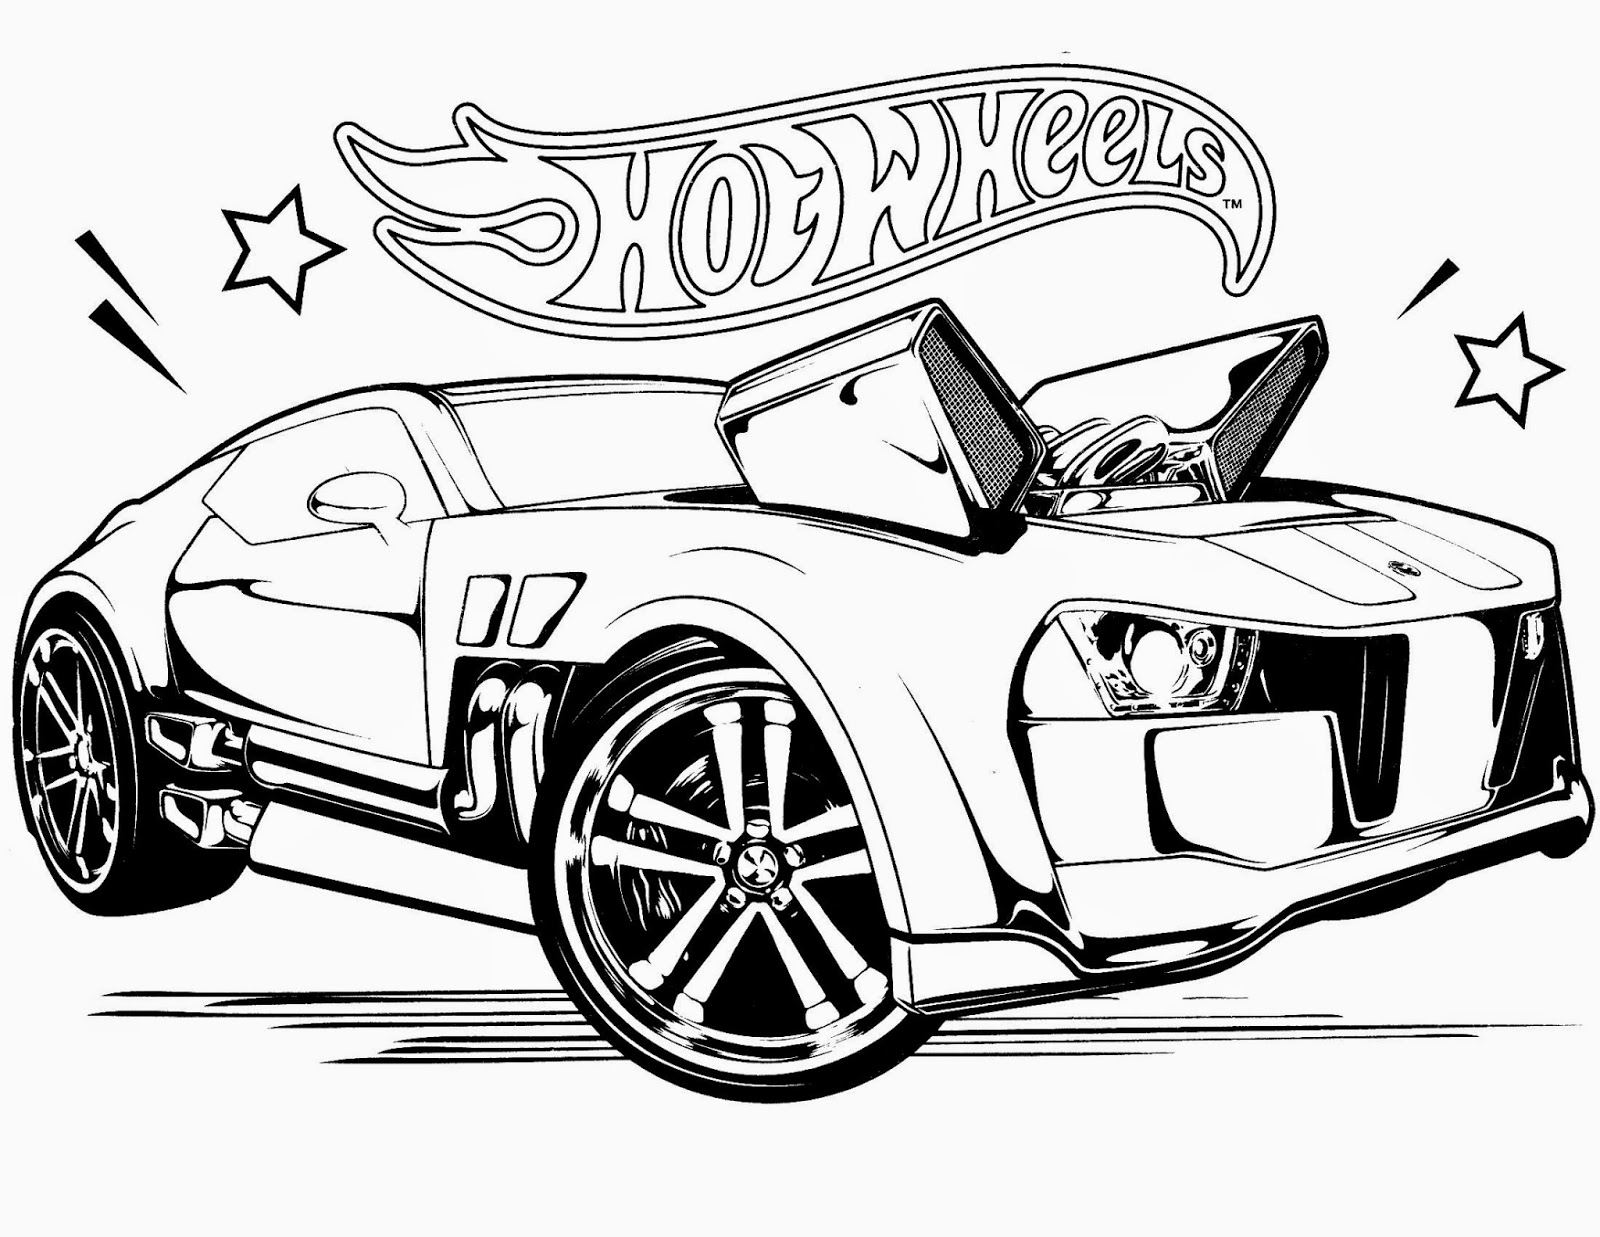 hot wheels coloring sheets hot wheel coloring pages to download and print for free wheels coloring hot sheets